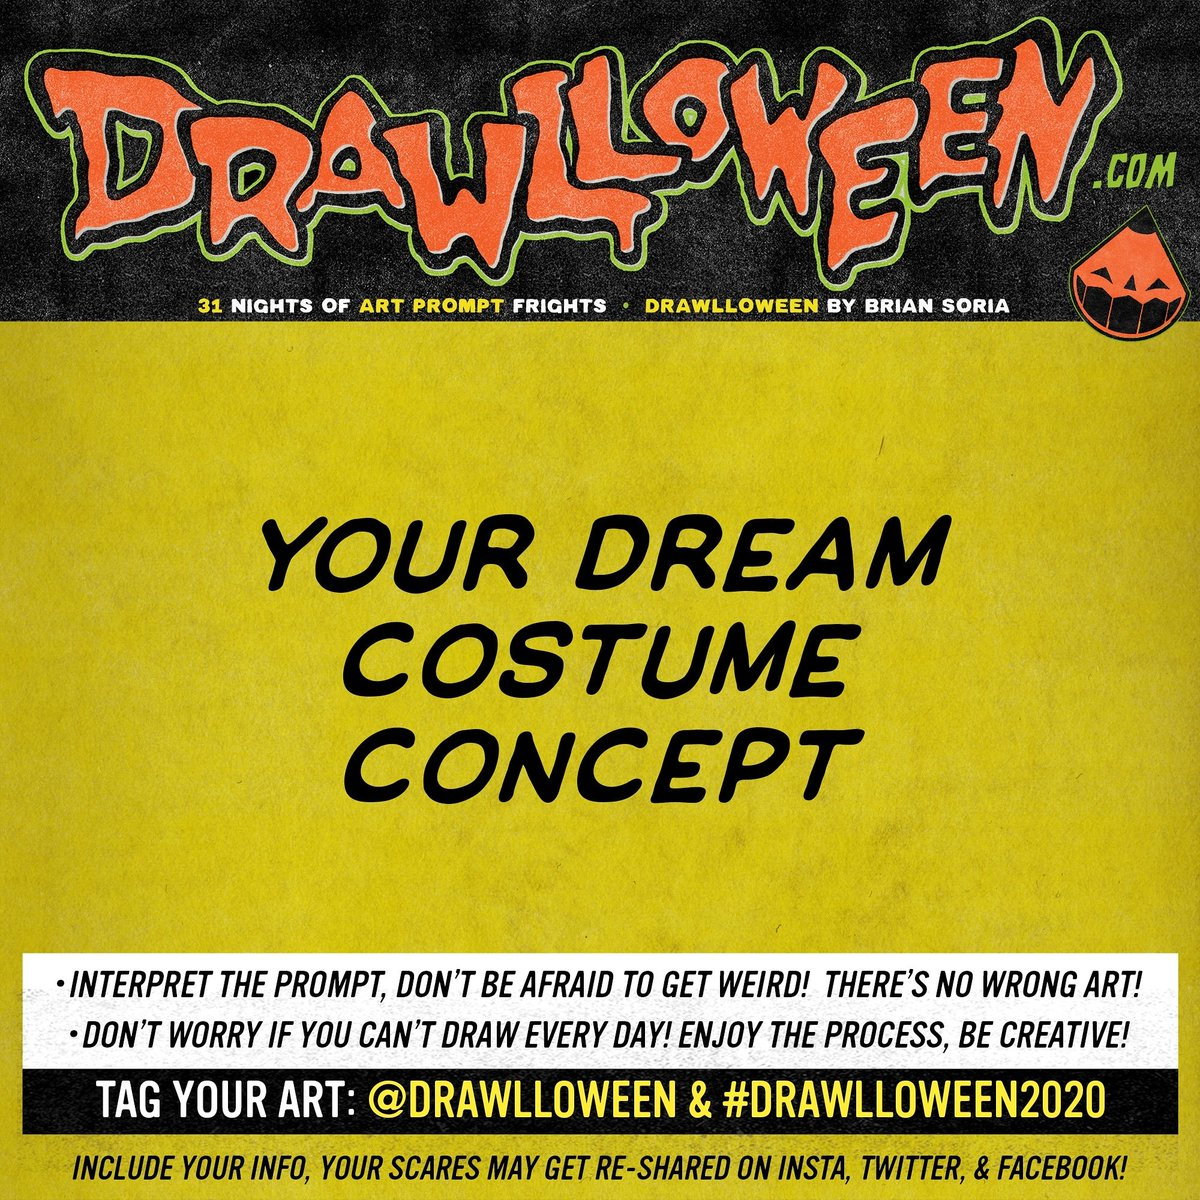 Today's #Drawlloween Prompt:  Your Dream Costume Concept: If you had no limitations, what would your perfect Halloween costume look like?  #DRAWLLOWEEN2020